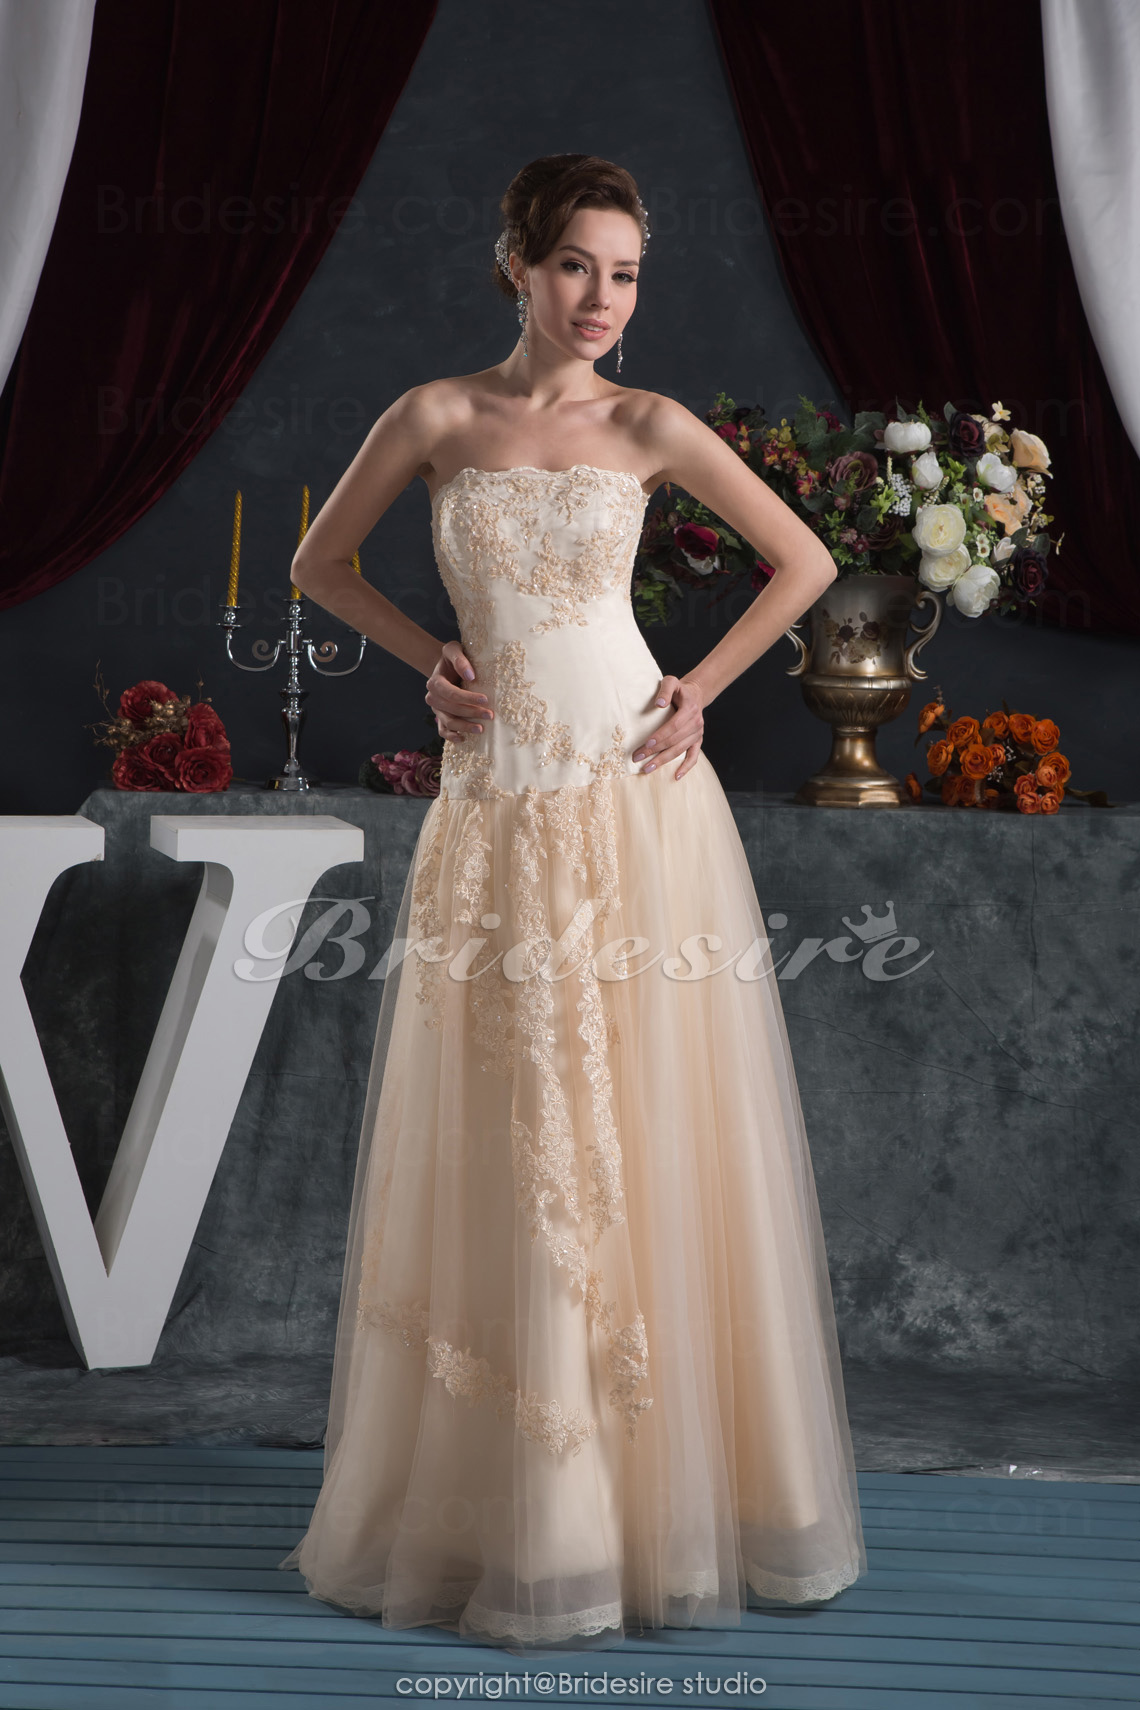 Sheath/Column Strapless Floor-length Sleeveless Satin Chiffon Wedding Dress